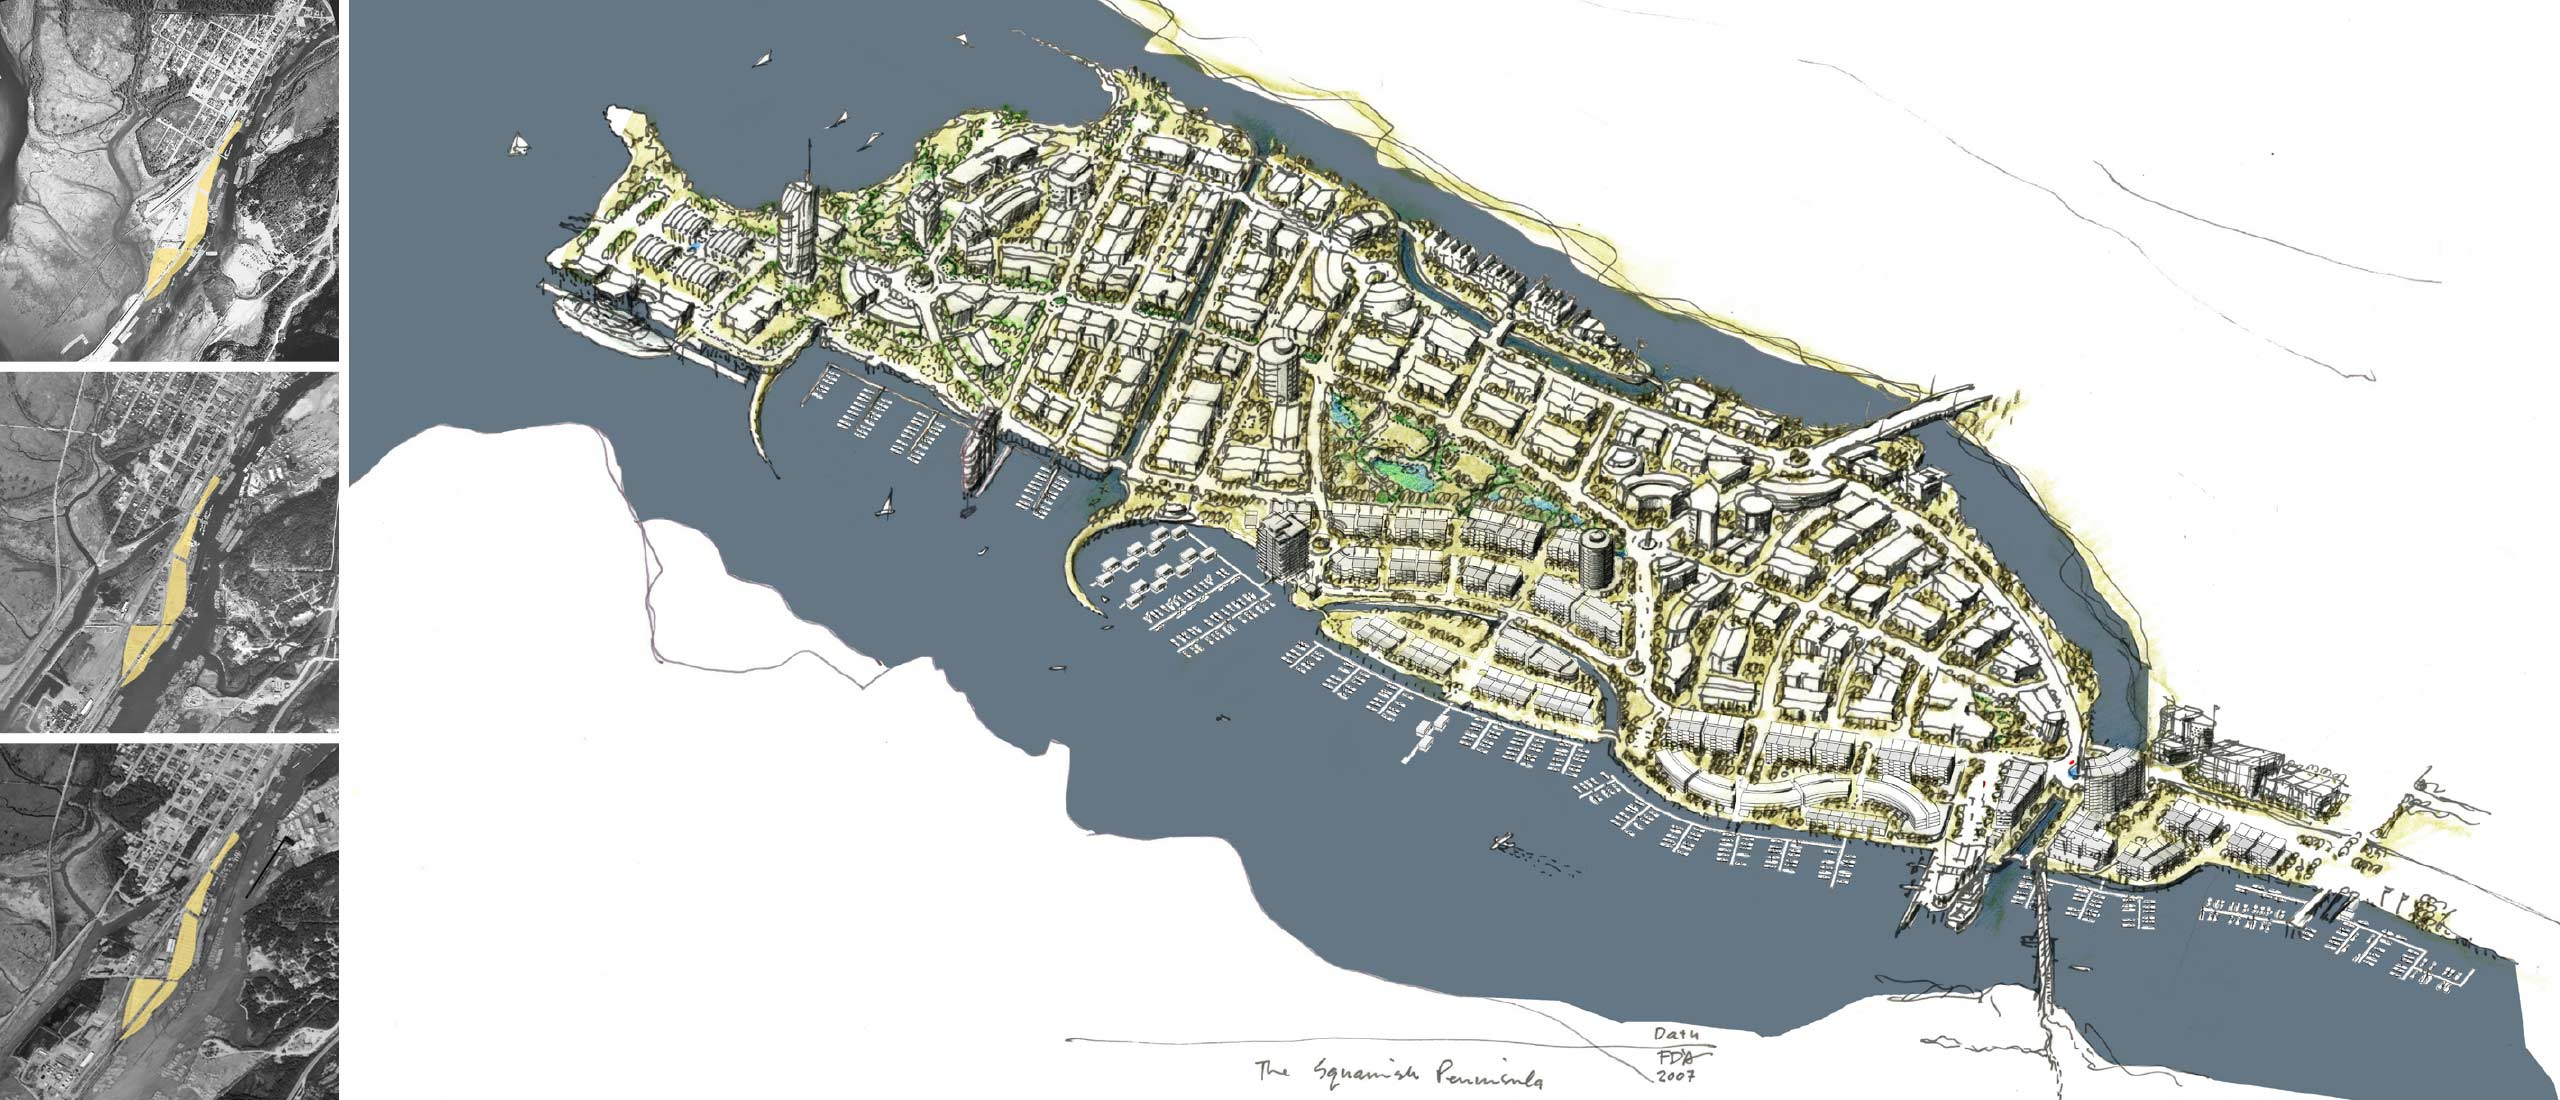 Swell Squamish Waterfront Plan Dambrosio Architecture Urbanism Largest Home Design Picture Inspirations Pitcheantrous